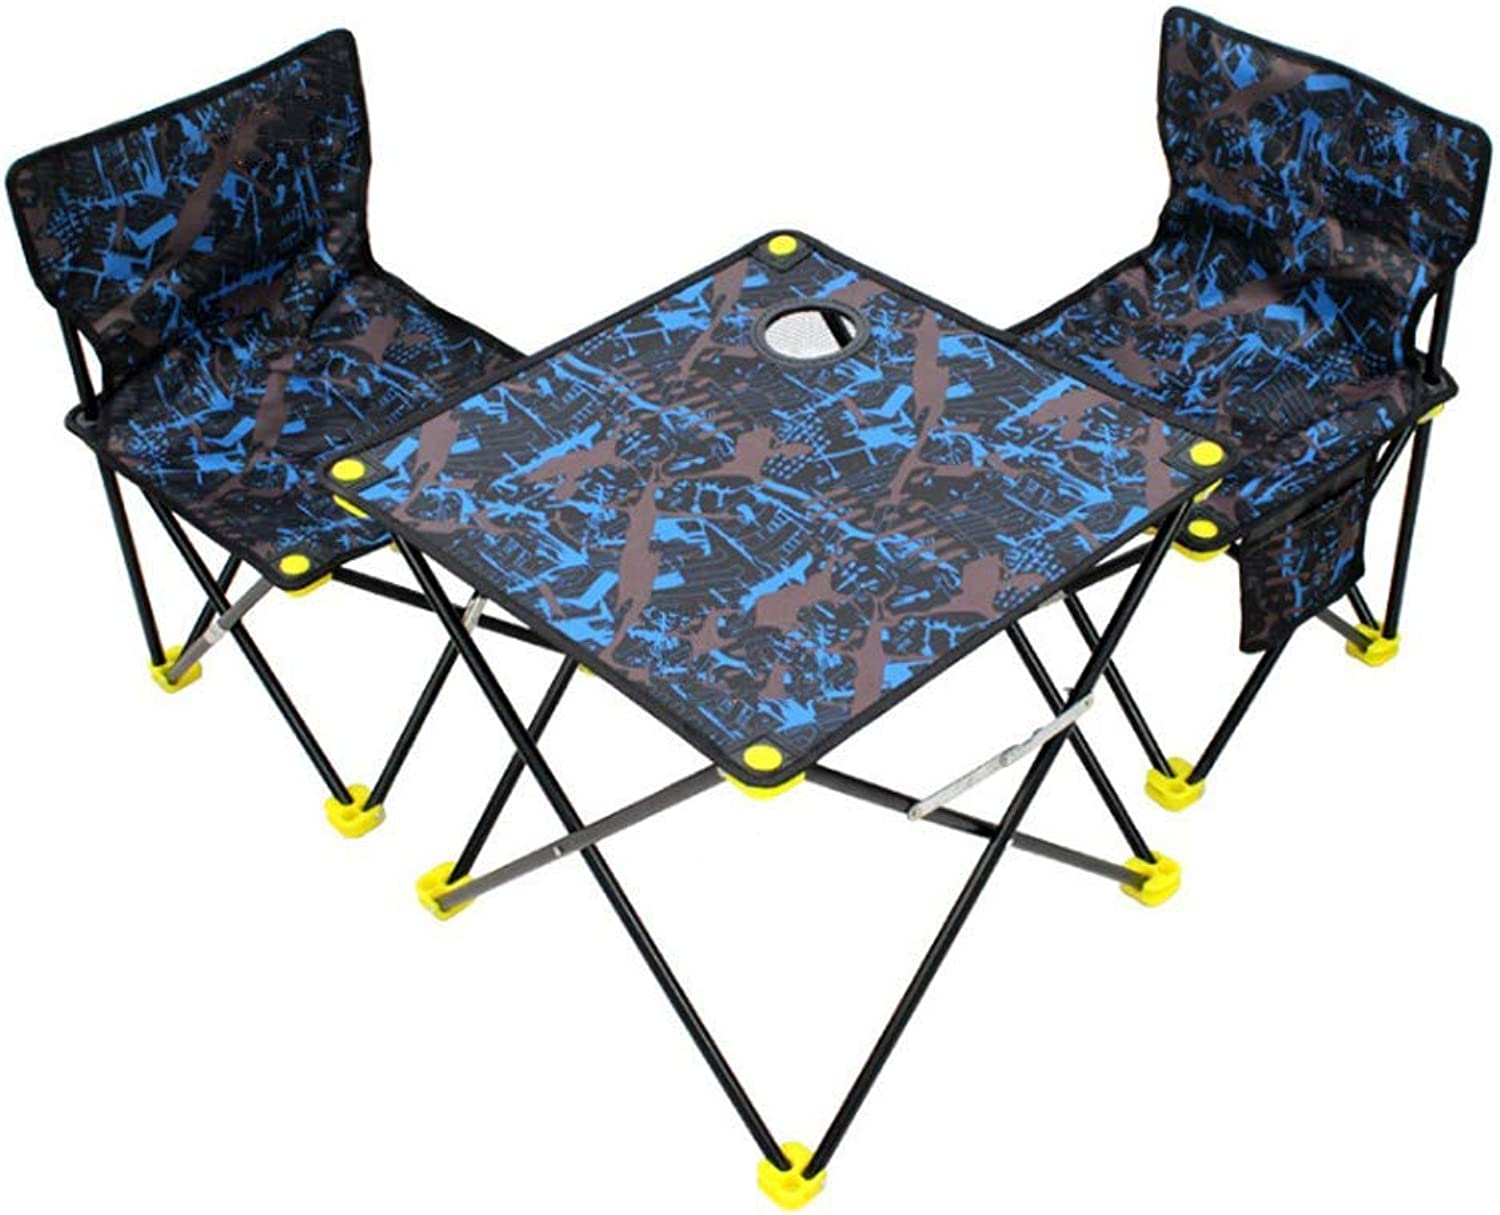 SPTAIR Two Folding Camping Chair and Table, Lightweight for Camping Suit, Beach, Backpacking & Outdoor Festivals Compact & Heavy Duty Supports 264 lbs